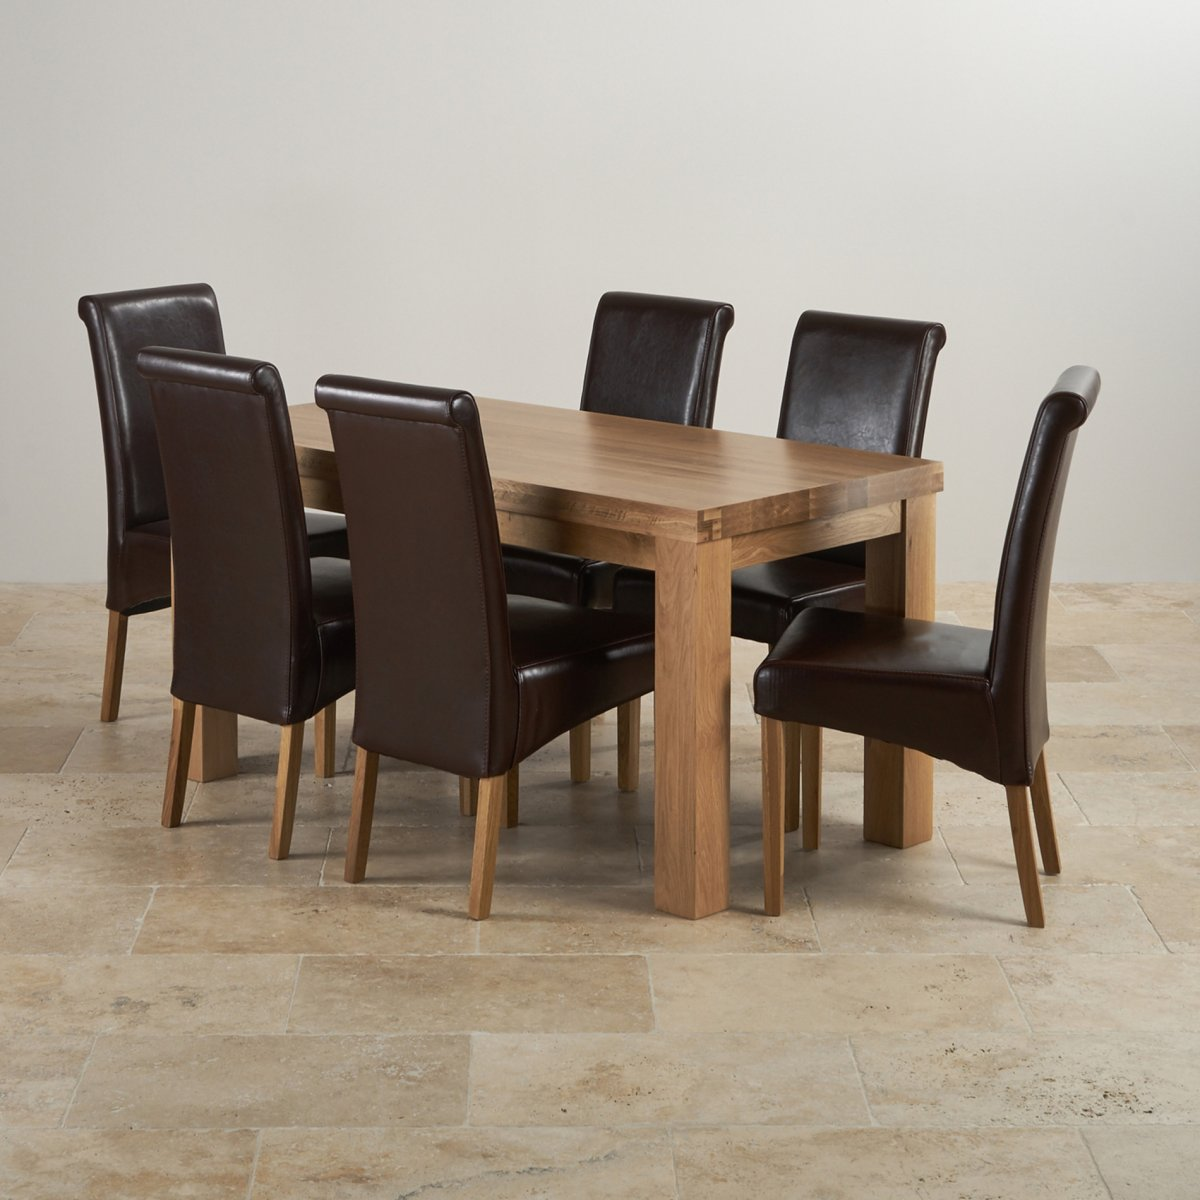 Leather Dining Set: Contemporary Dining Set In Oak: Table + 6 Brown Leather Chairs